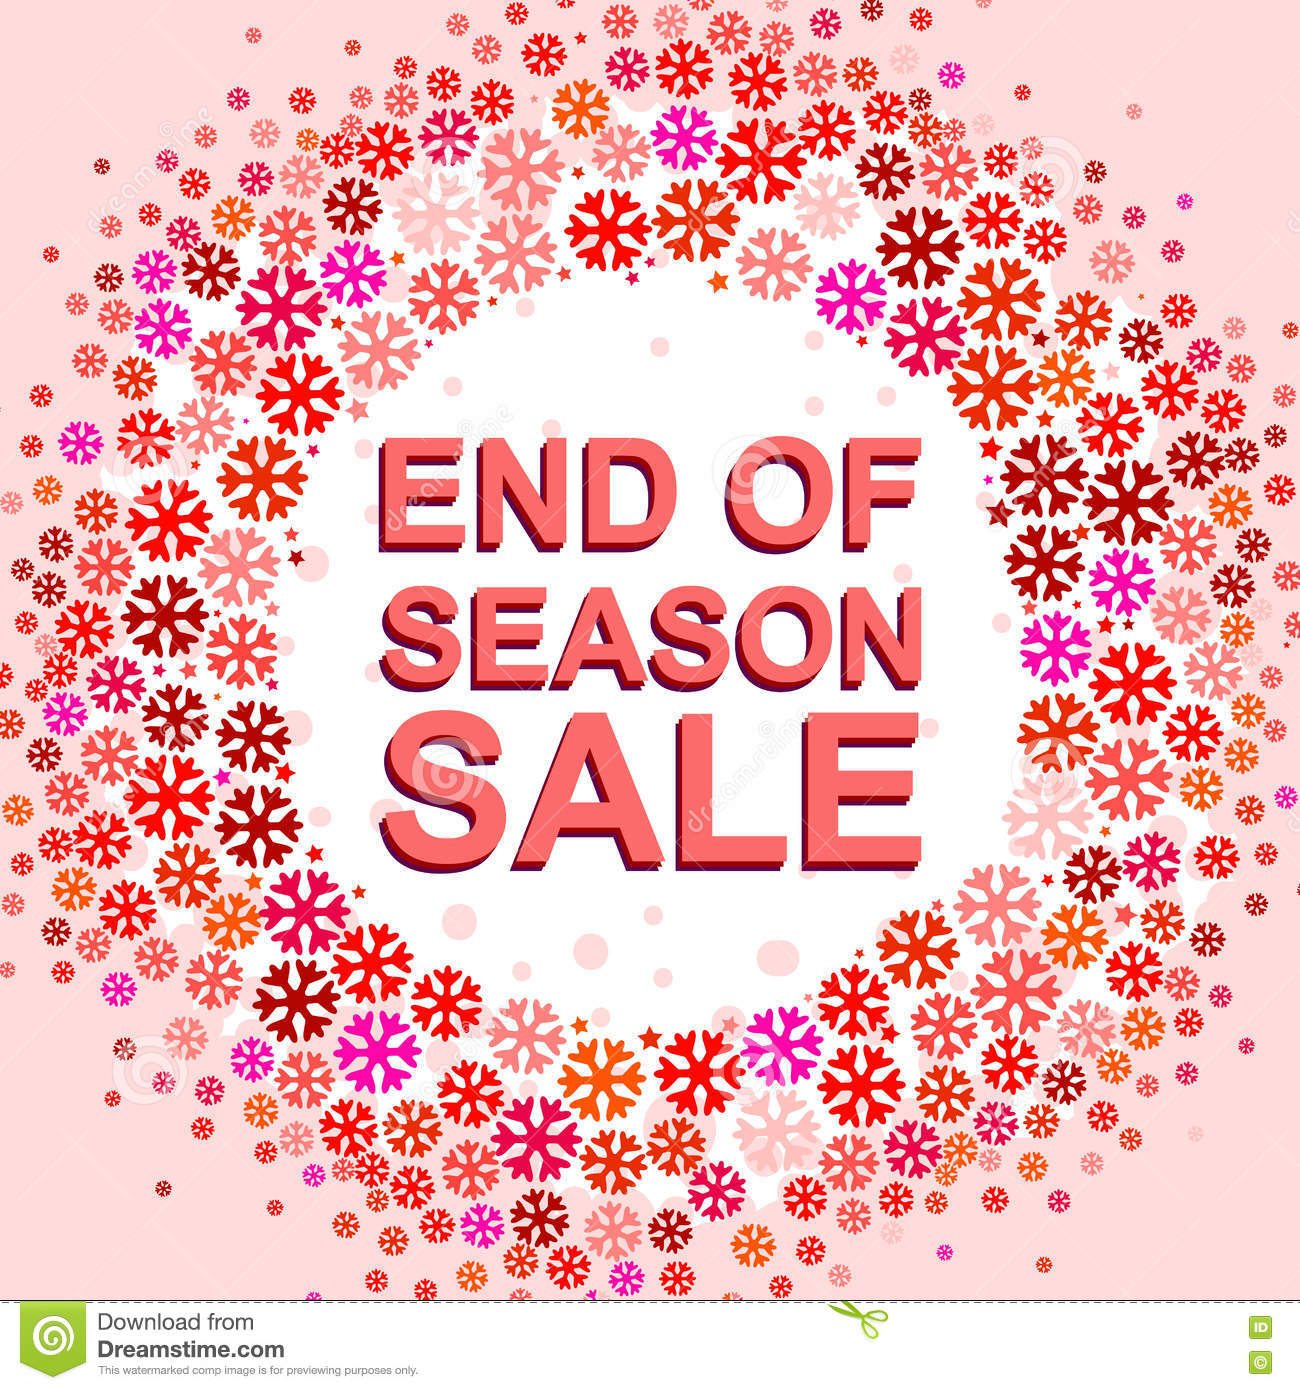 27975a9b77e Big winter sale poster with END OF SEASON SALE text. Advertising pink and  red vector banner template